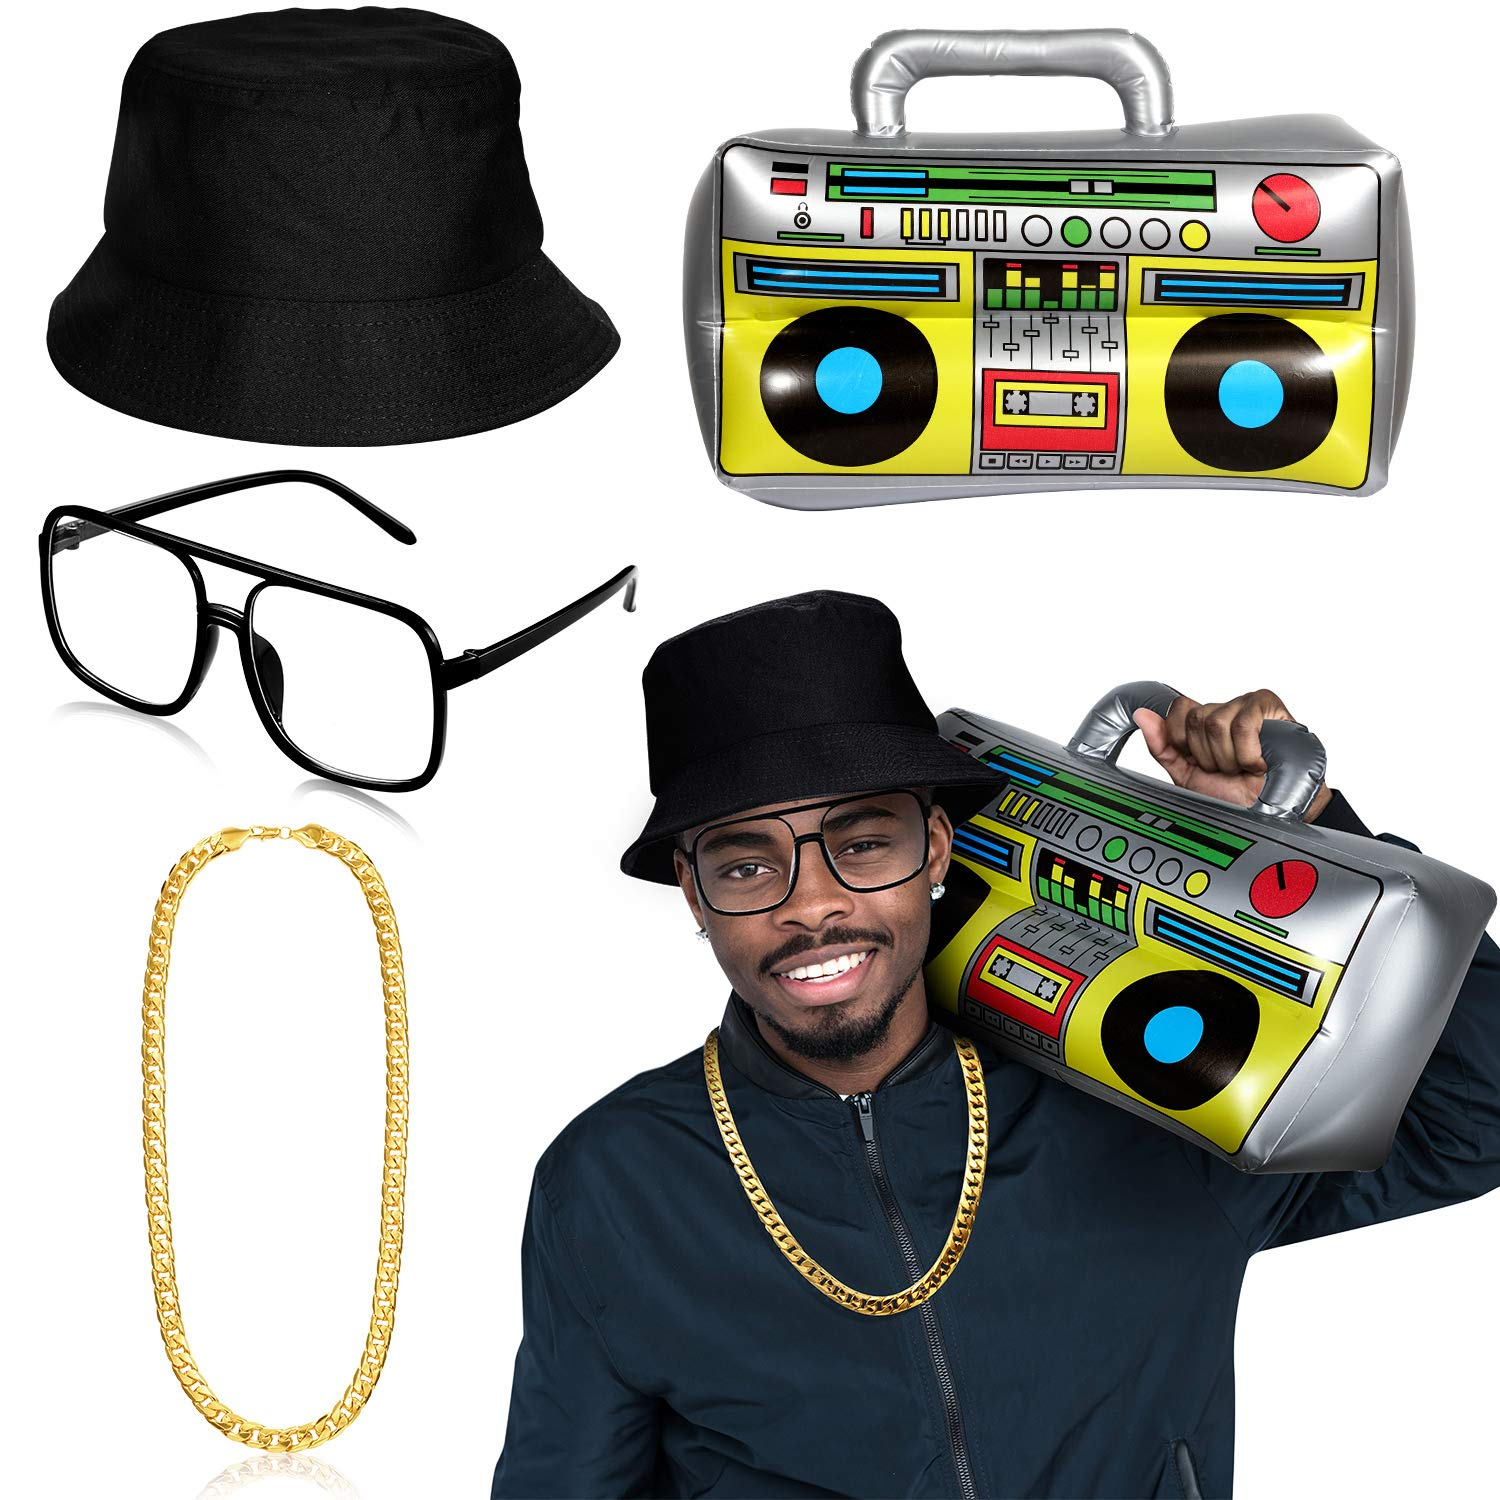 Hip Hop Costume Kit Includes Bucket Hat Sunglasses Faux Gold Chain Inflatable Mobile Phone 80s 90s Hip Hop Cool Rapper Outfits Costume Accessories